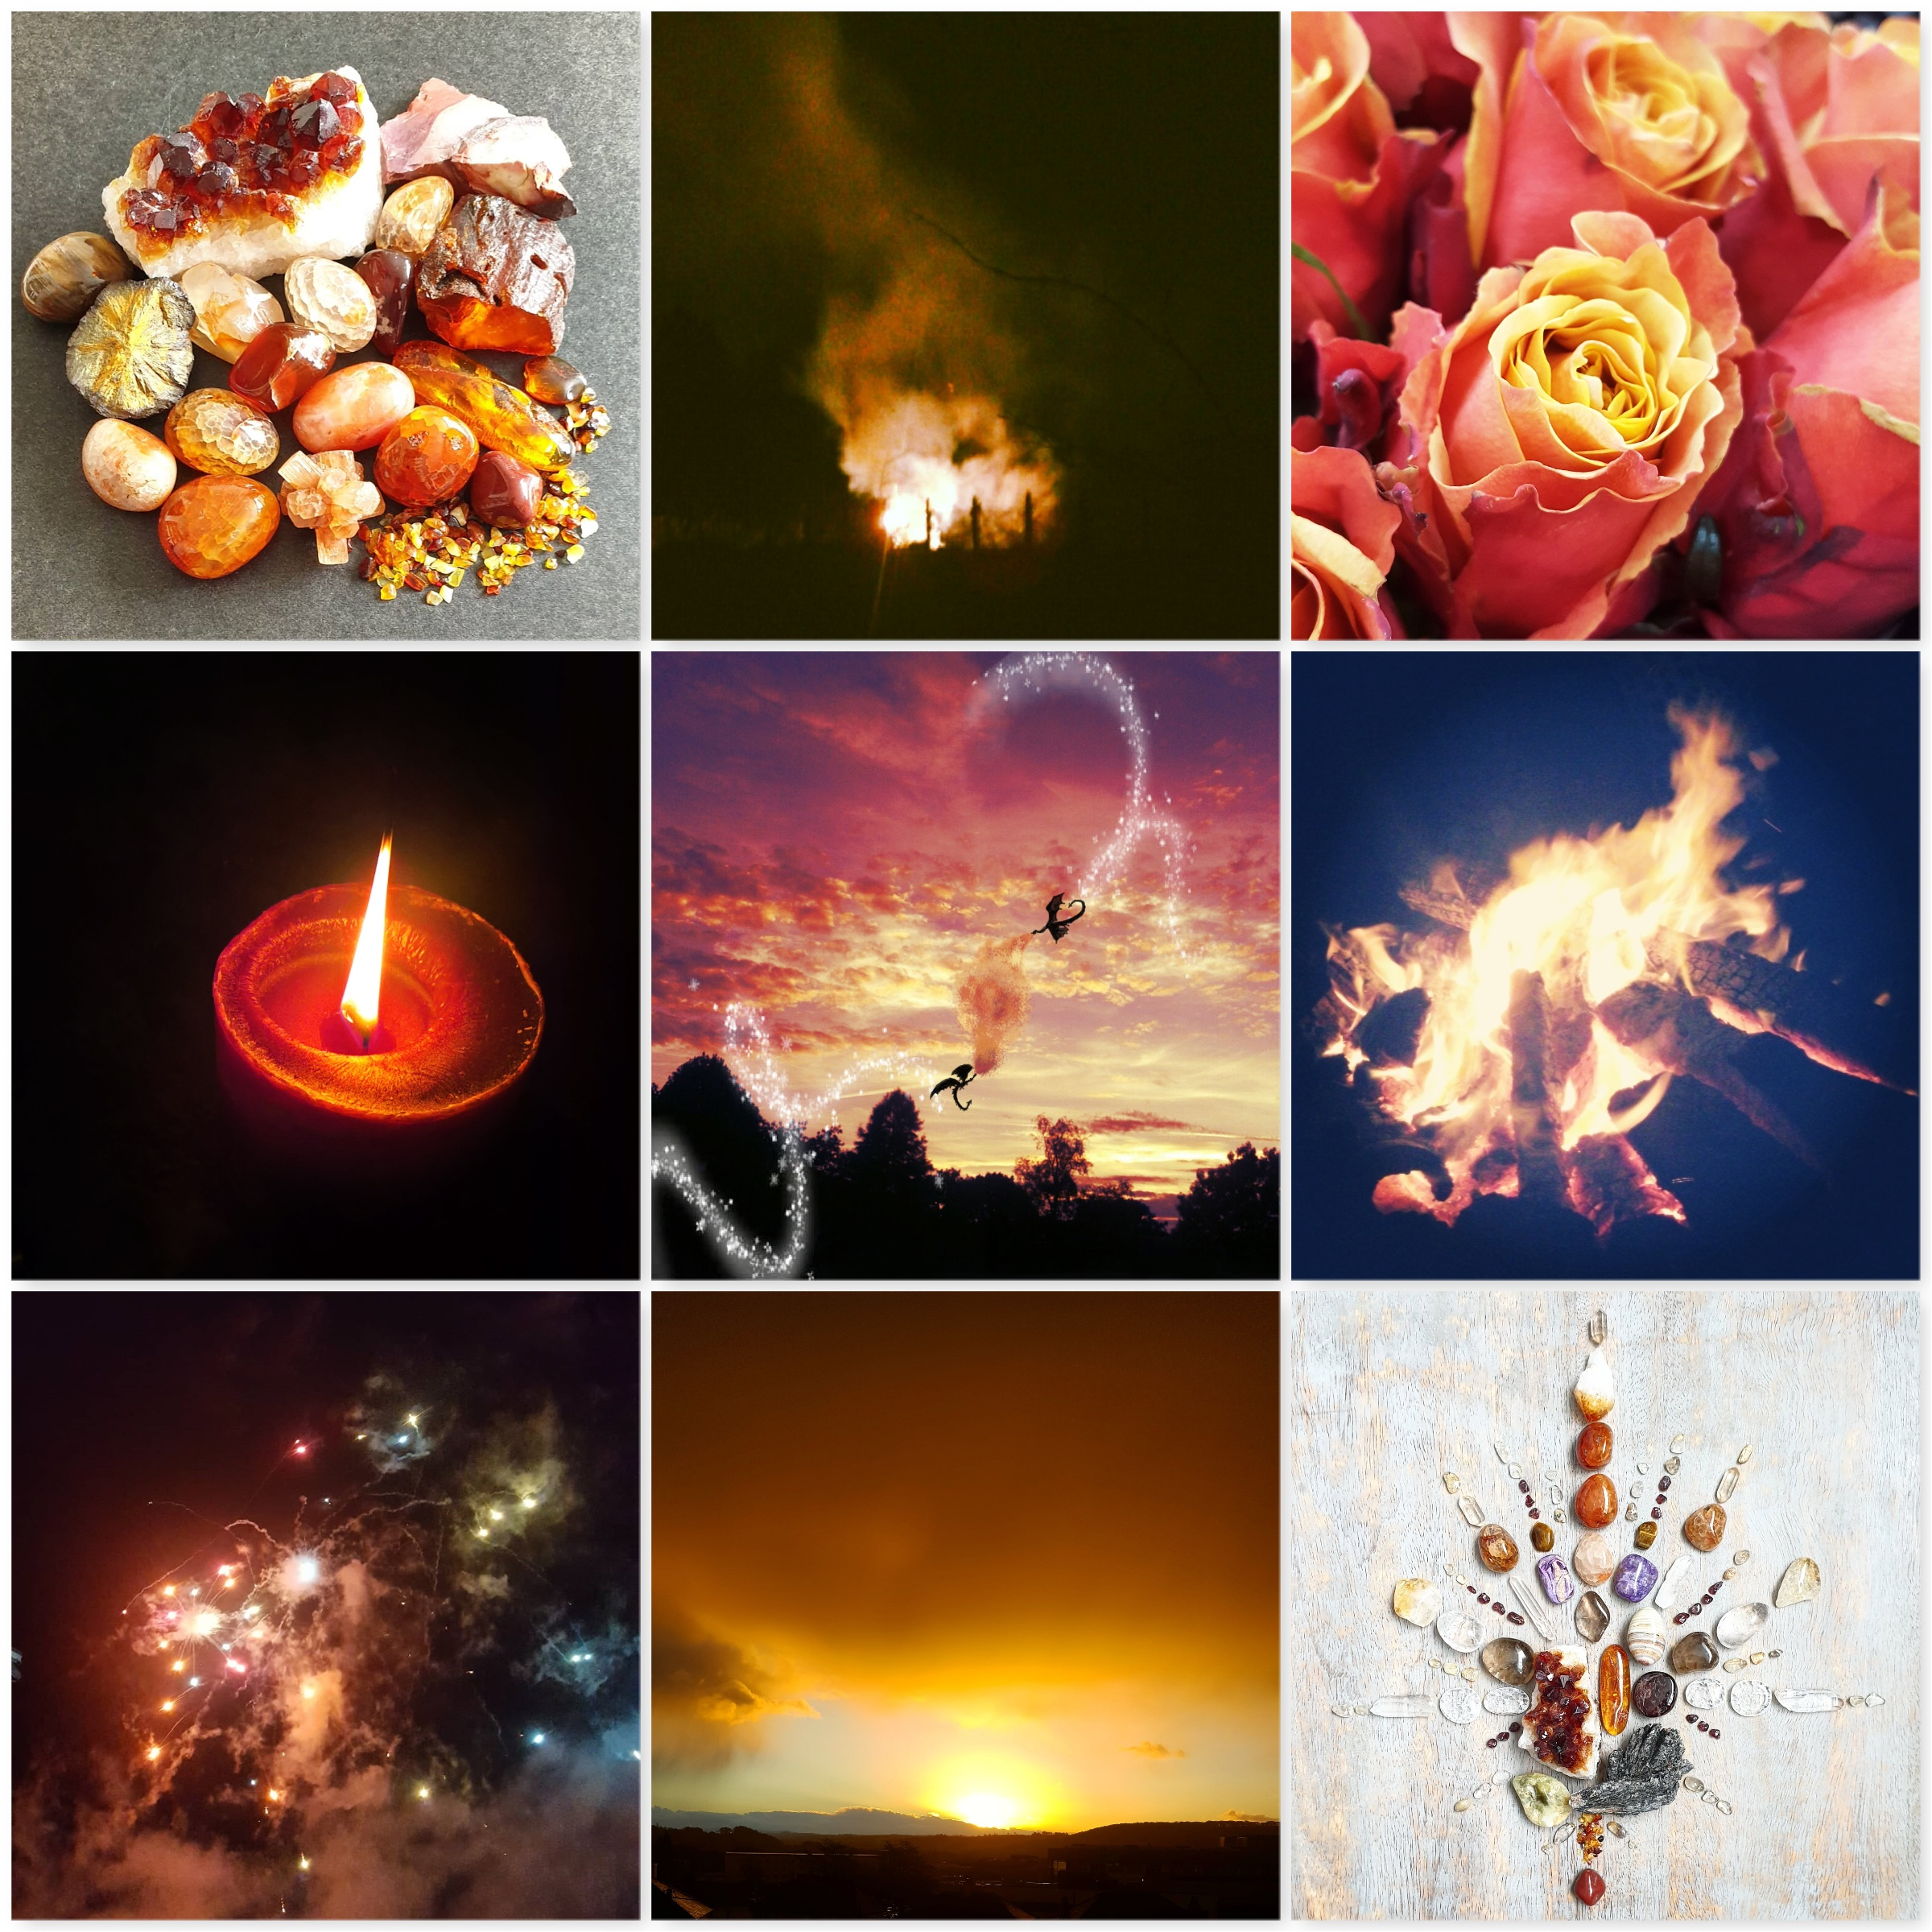 colours, fire, crystals, roses, candle, dragons, fireworks, sunset, crystal grid, the last krystallos